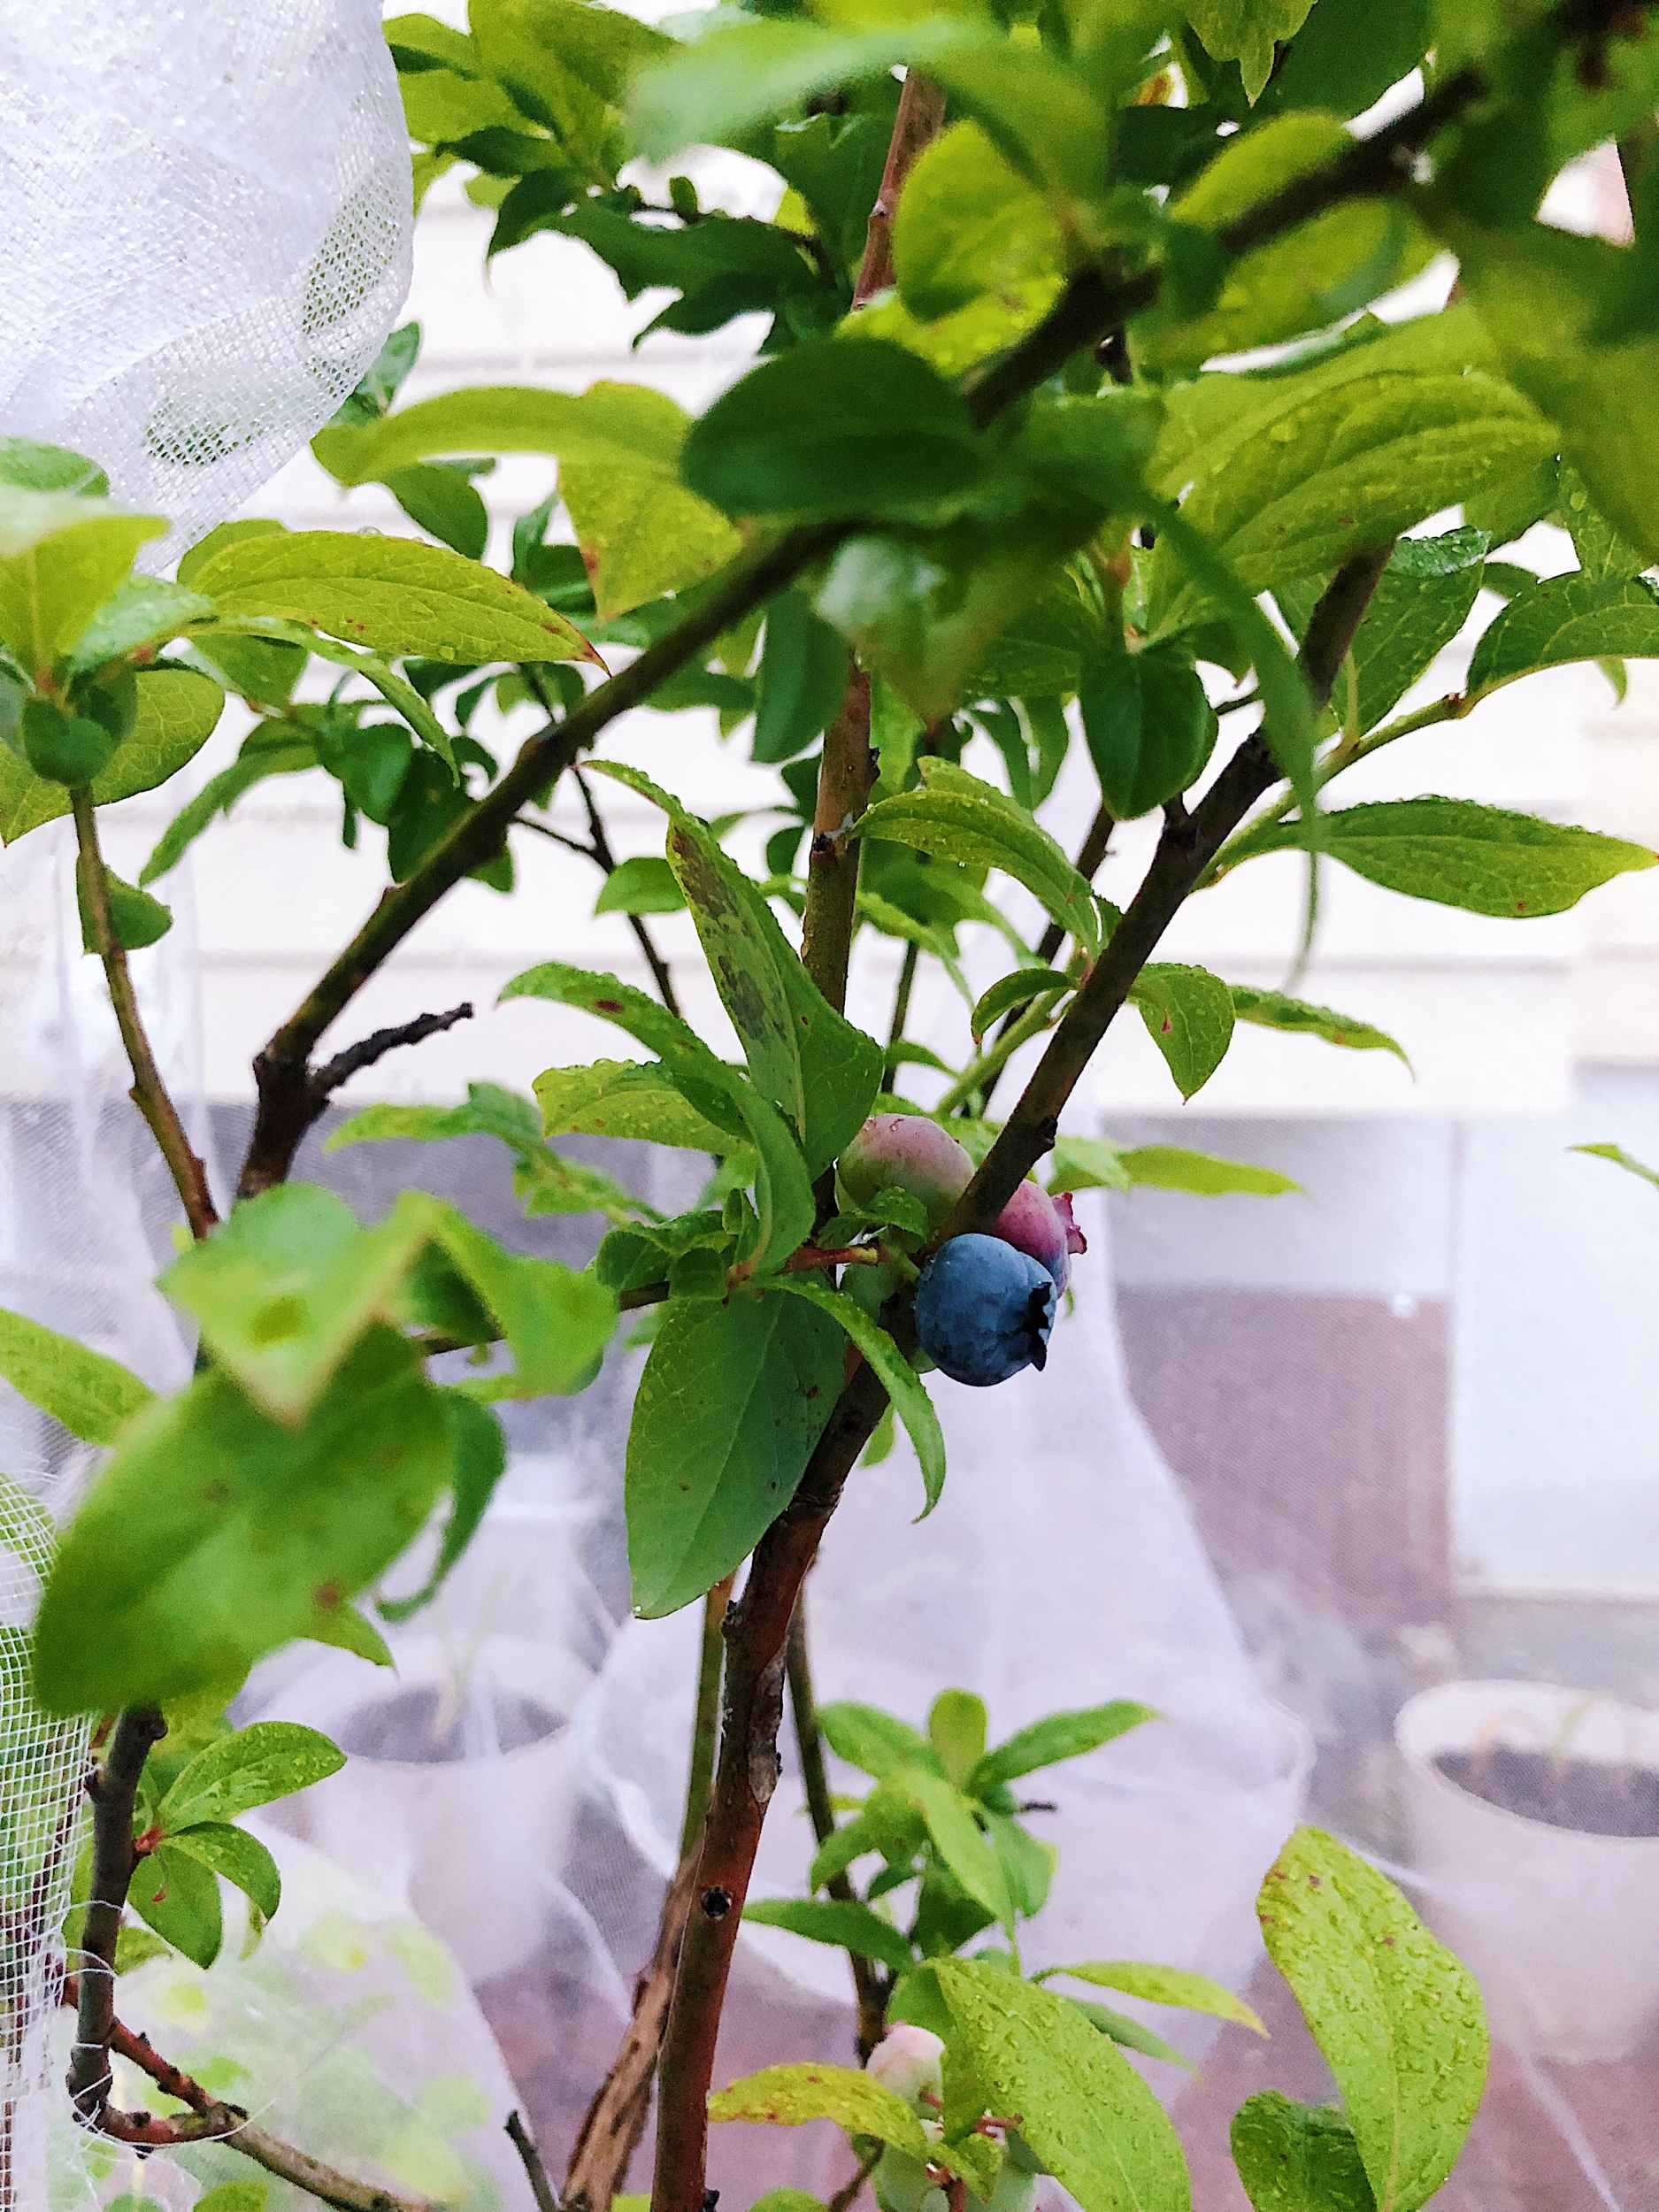 The first ripe blueberry of 2019